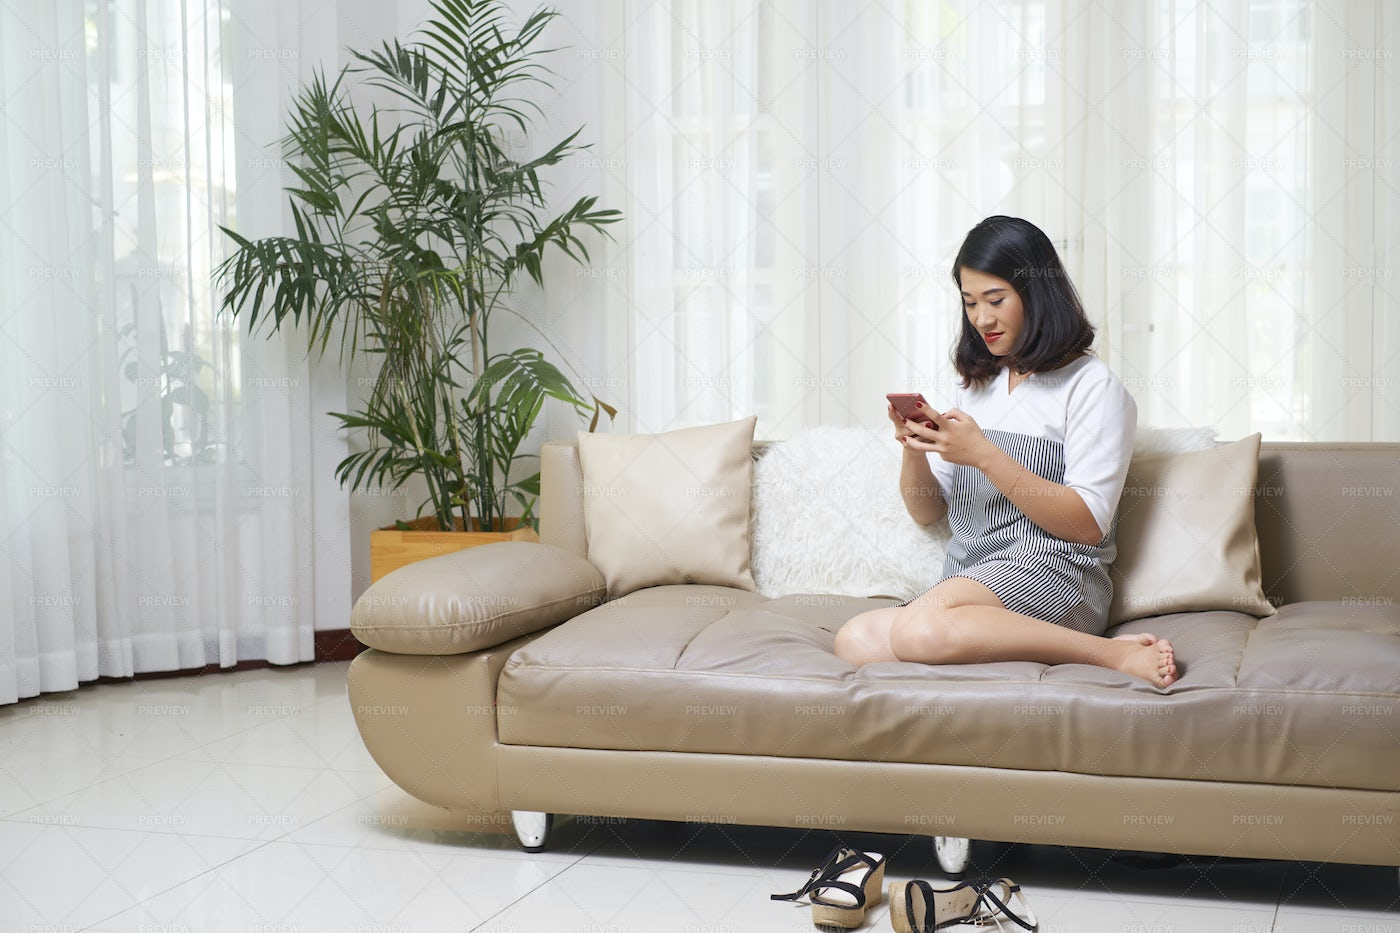 Woman Using Smartphone At Home: Stock Photos